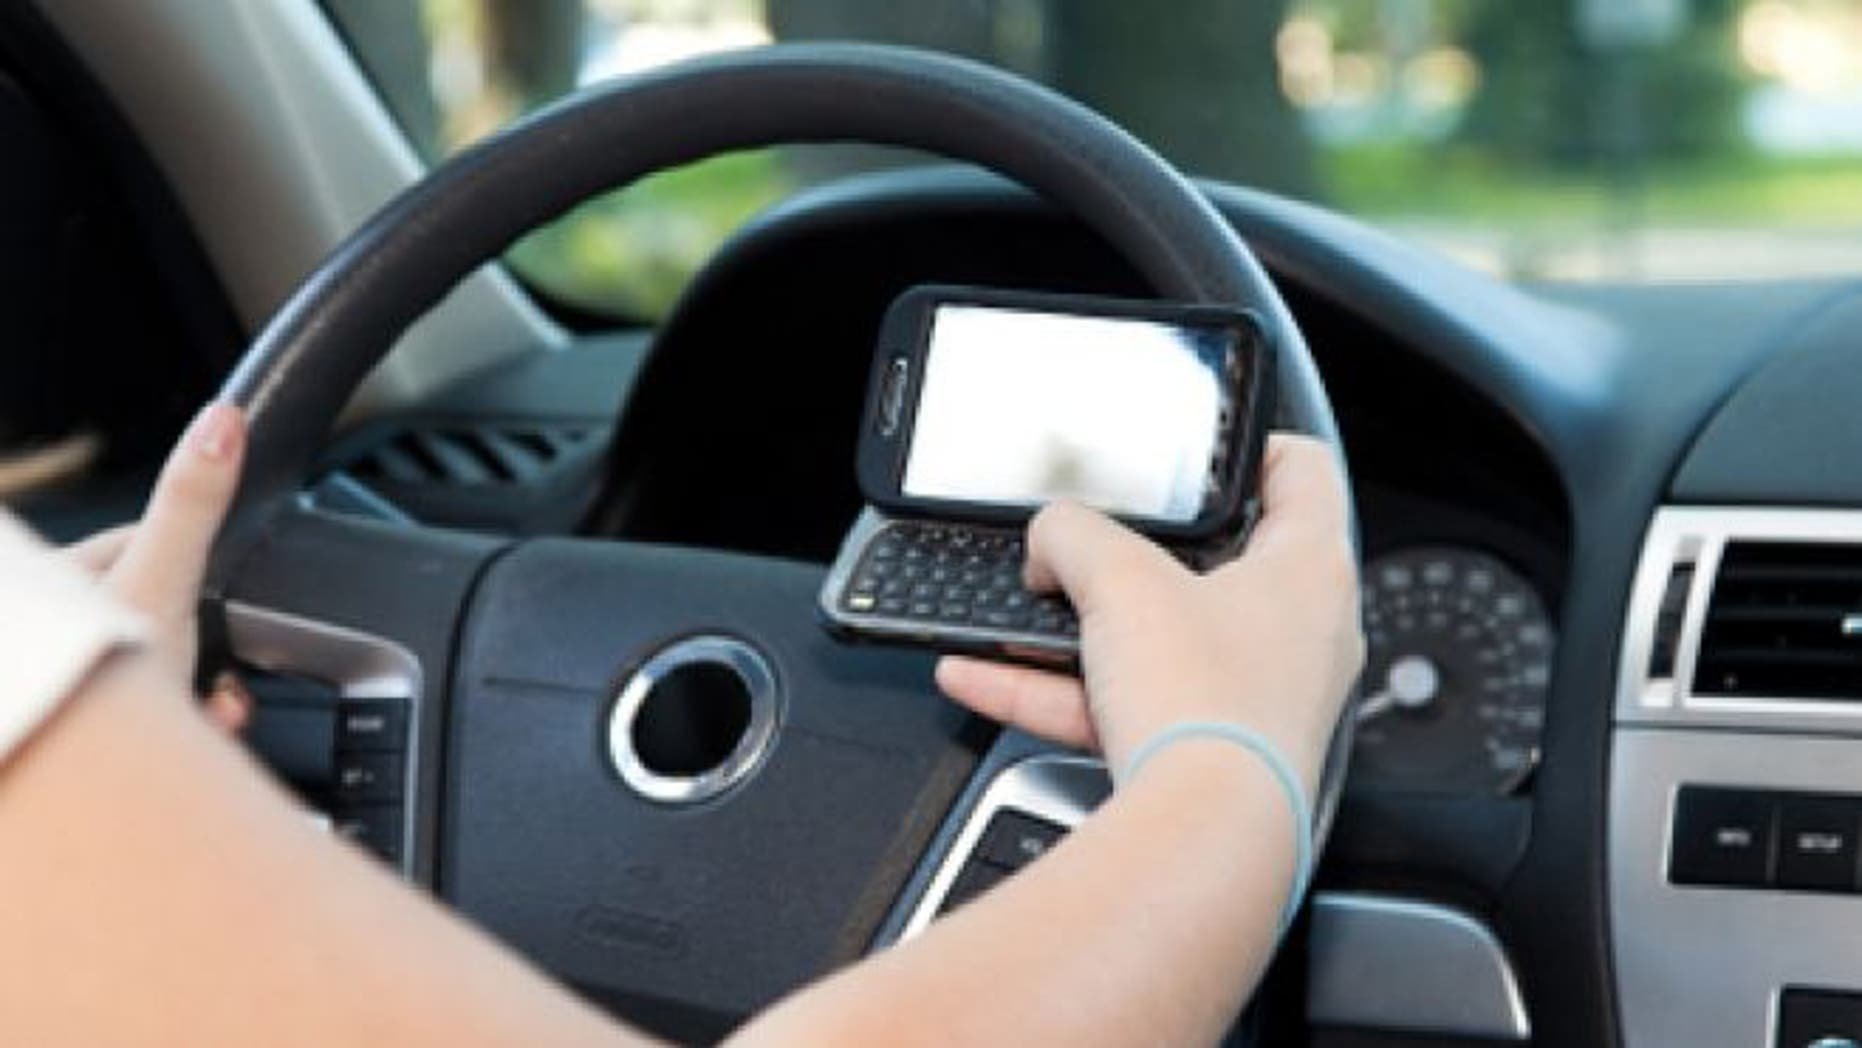 FILE: A New Jersey court has found a person who knowingly sends a text to a driver can be held liable if the driver causes an accident.